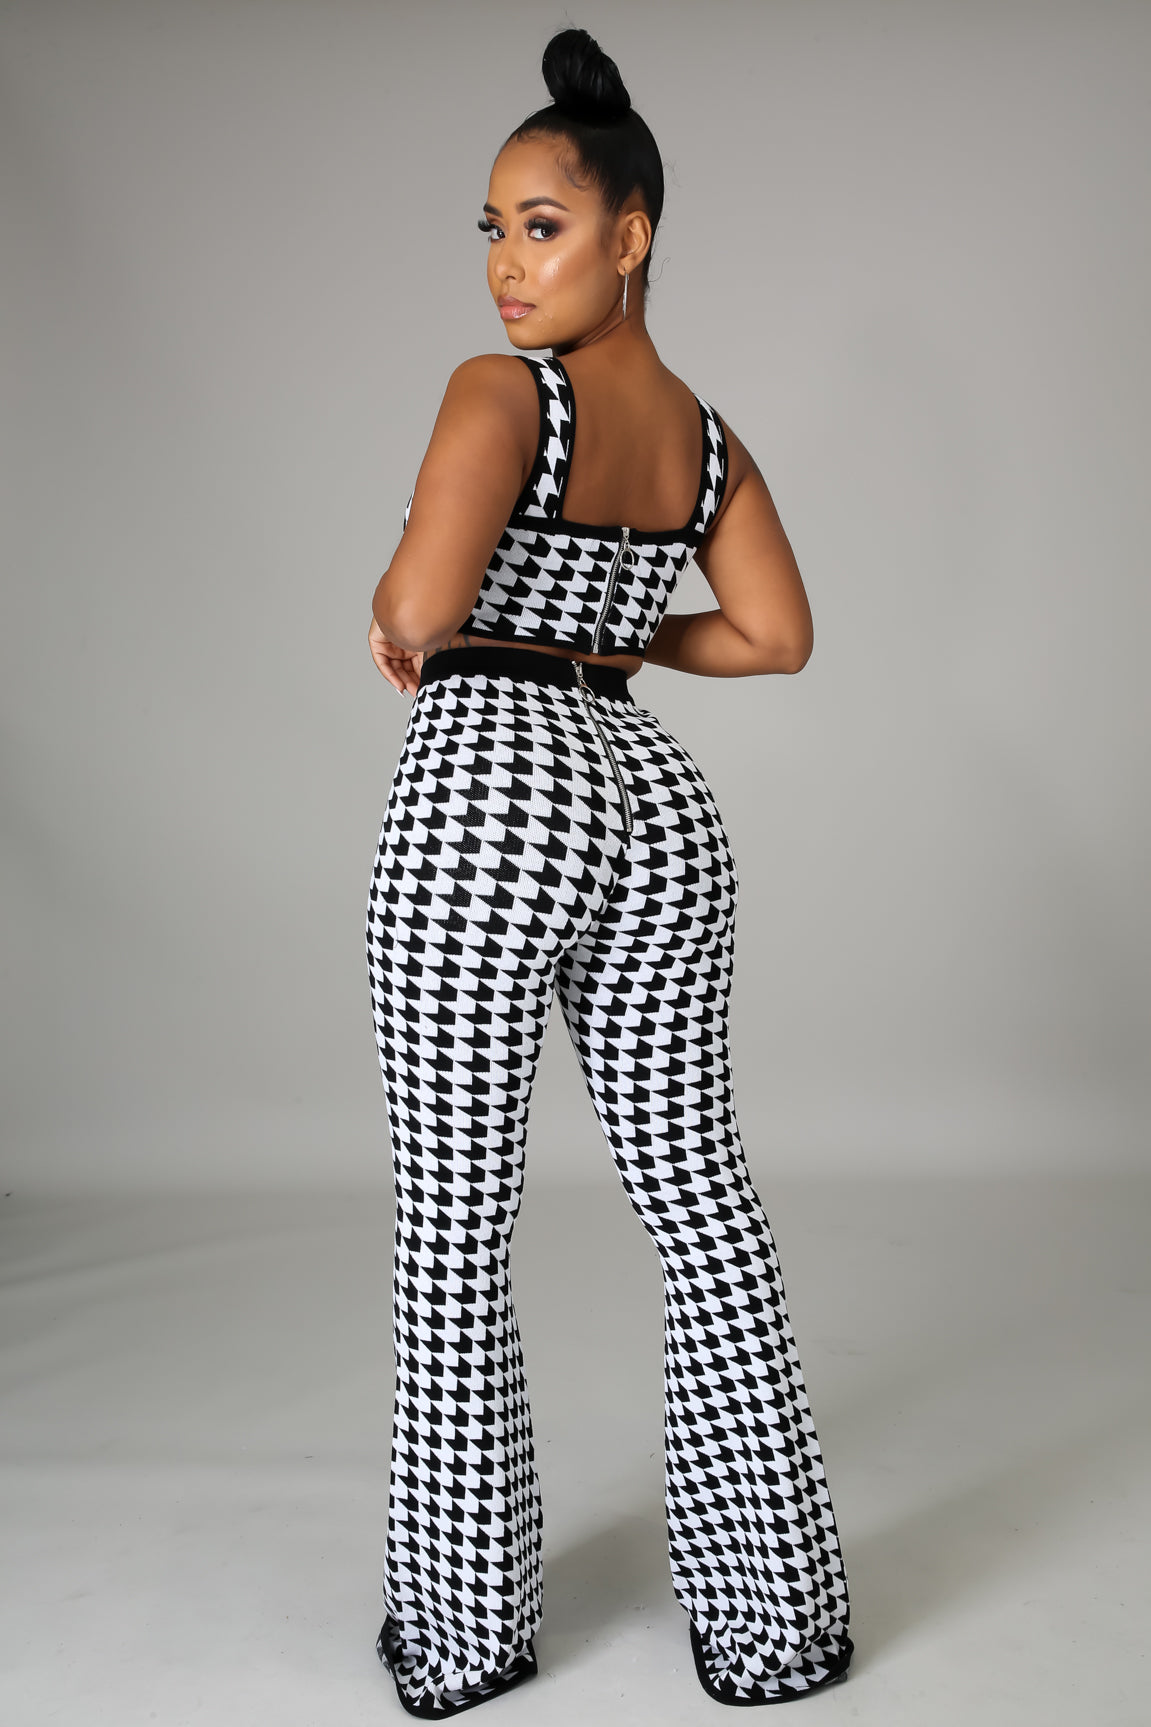 You'll Be Missing Me Pant Set